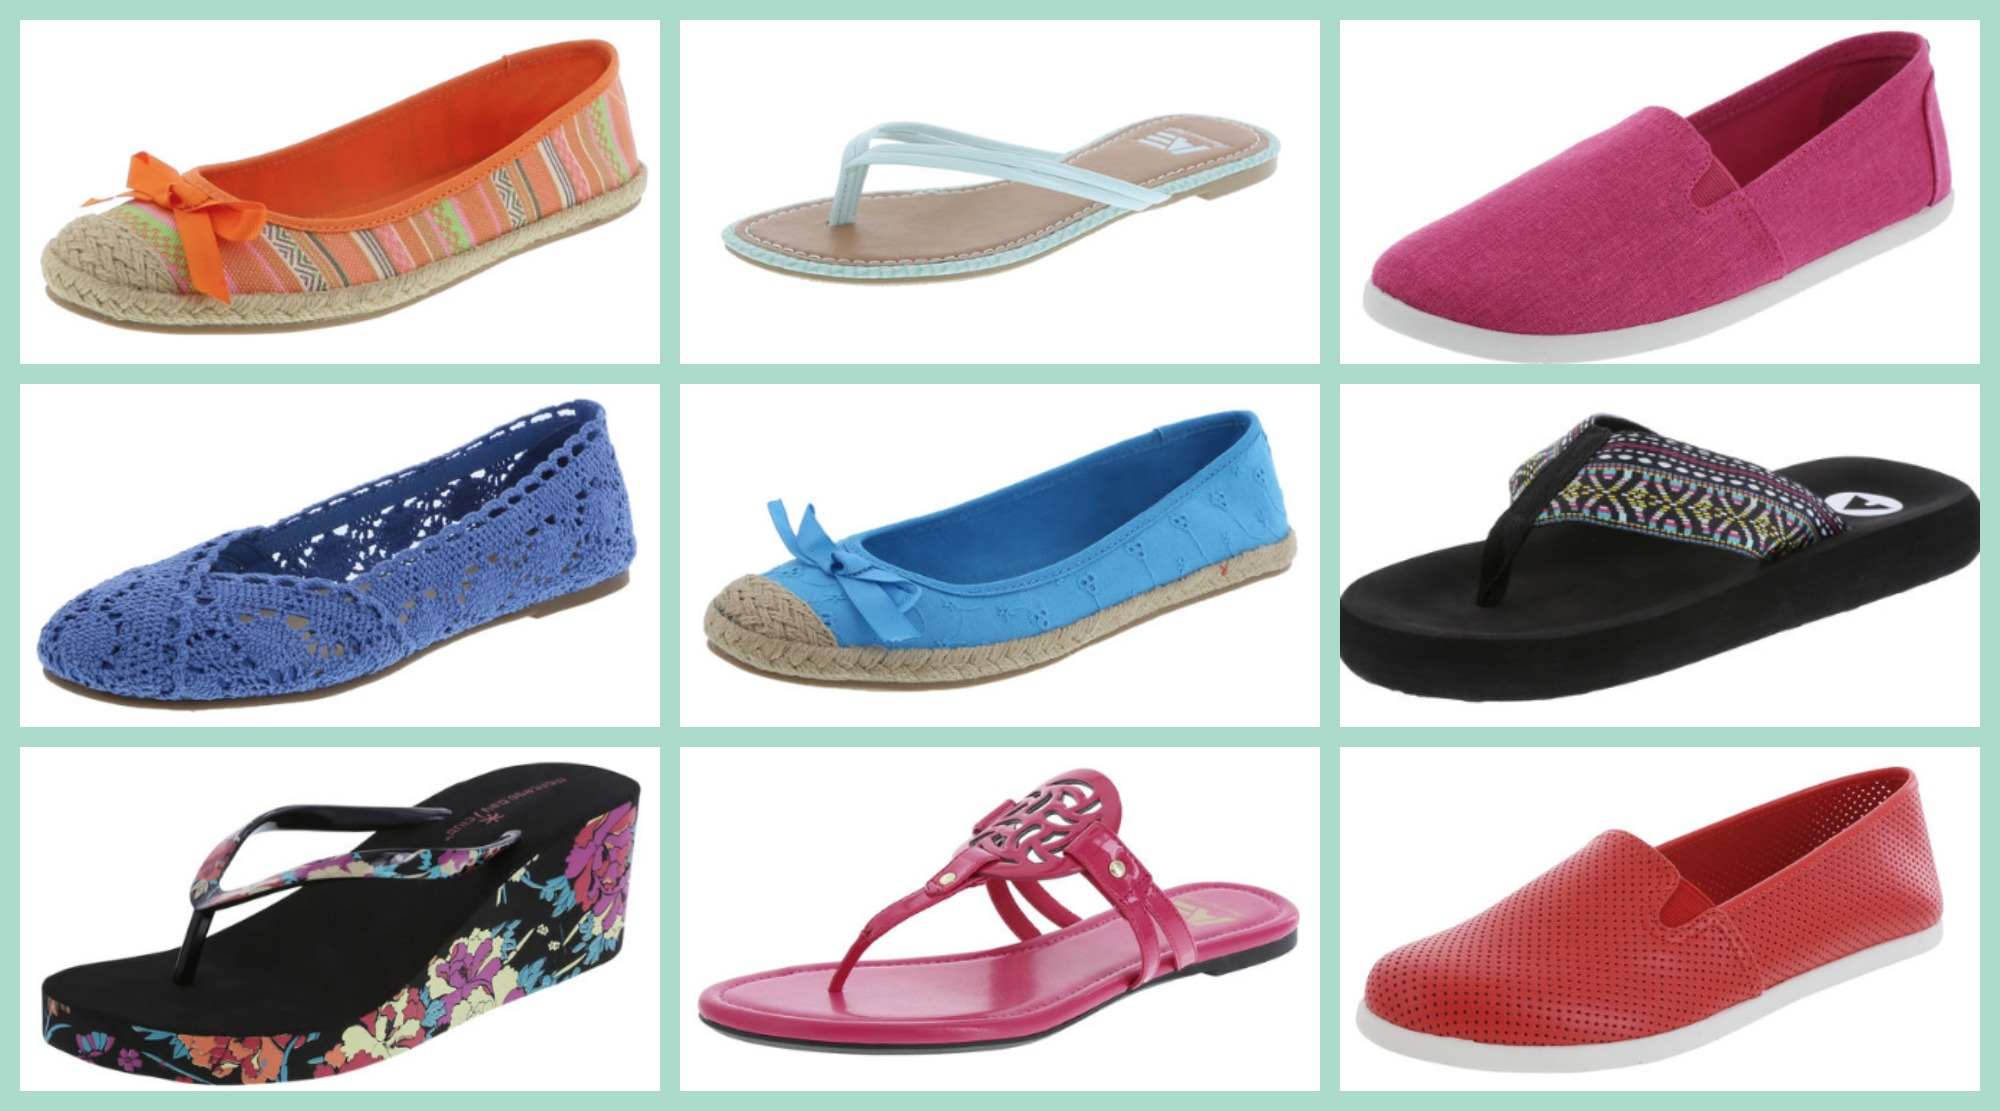 Clearance Shoes $3 per Pair at Payless